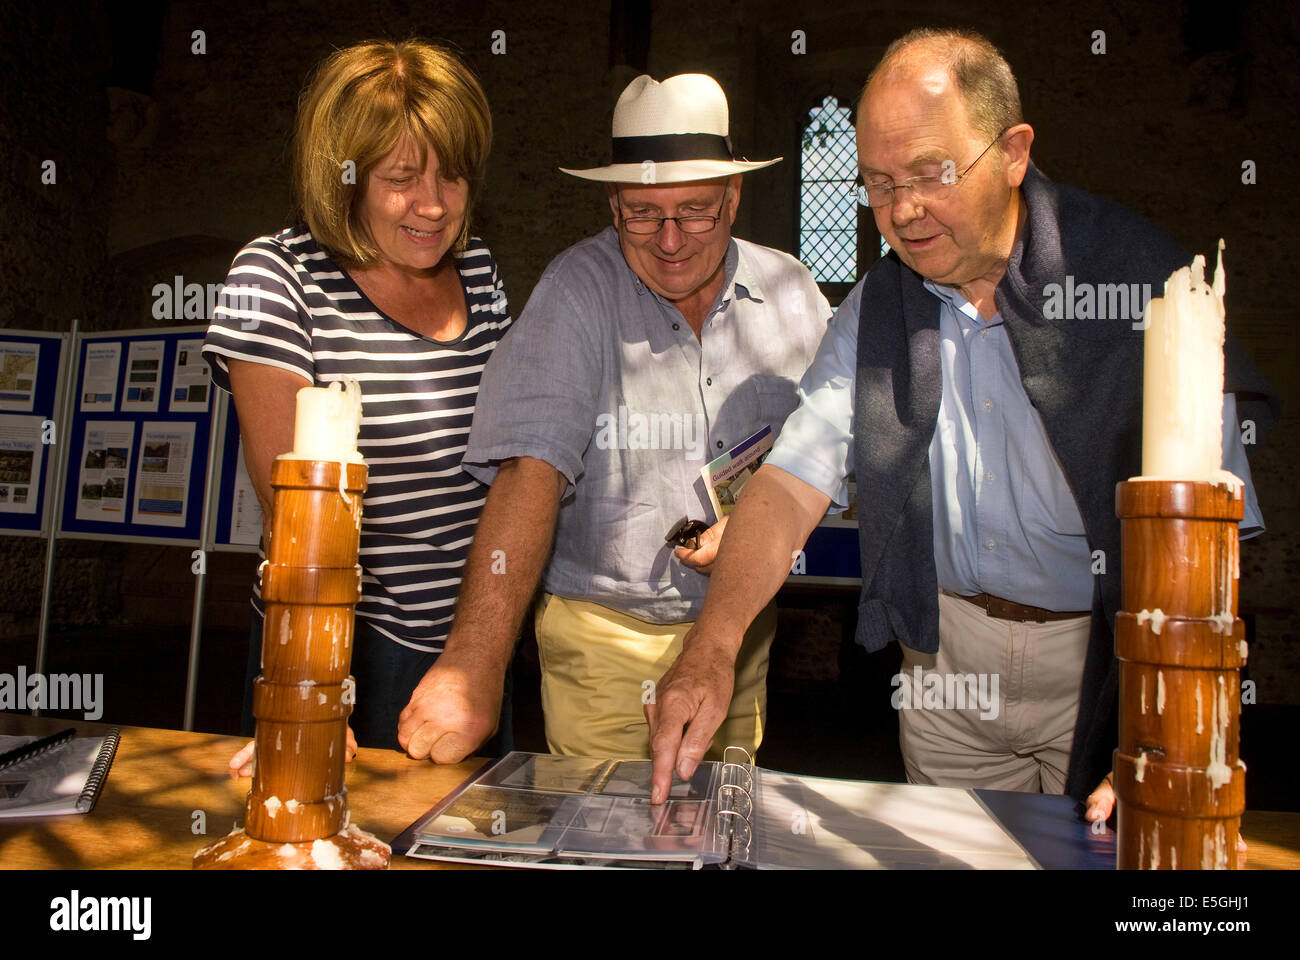 Organiser of a local history exhibition (far right) explaining the history of the local courthouse to visitors, - Stock Image